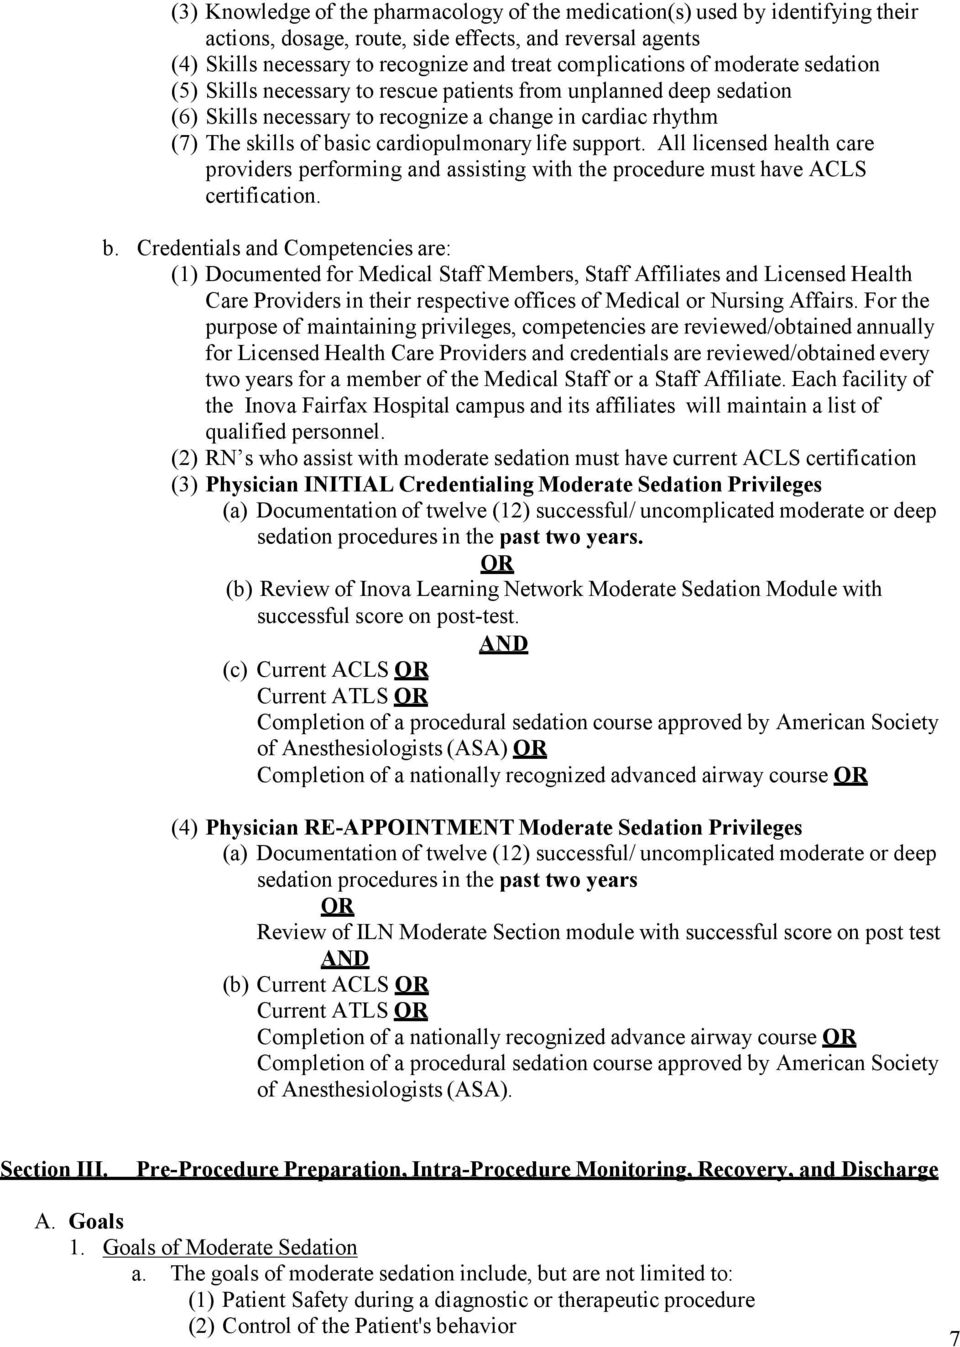 Inova Fairfax Hospital Request For Privelages To Administer Moderate